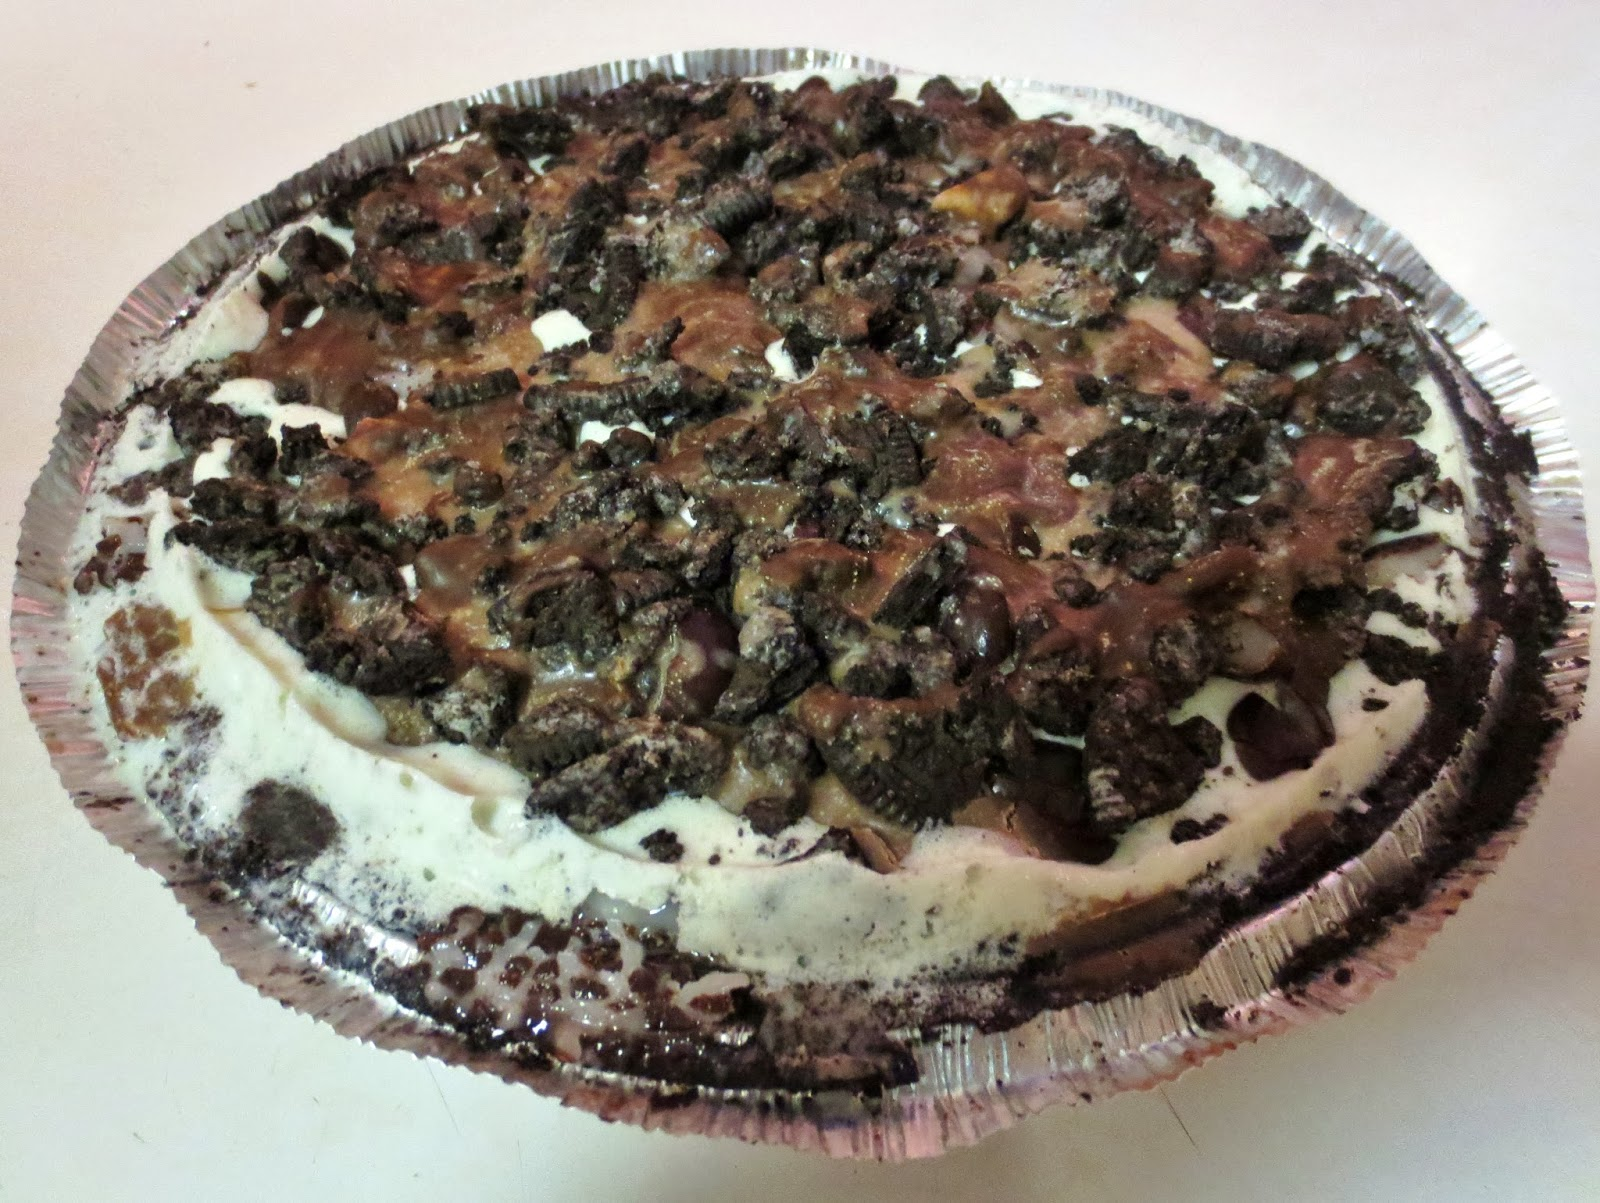 Princesses, Pies, & Preschool Pizzazz: Friday Pie-Day: Grasshopper Pie